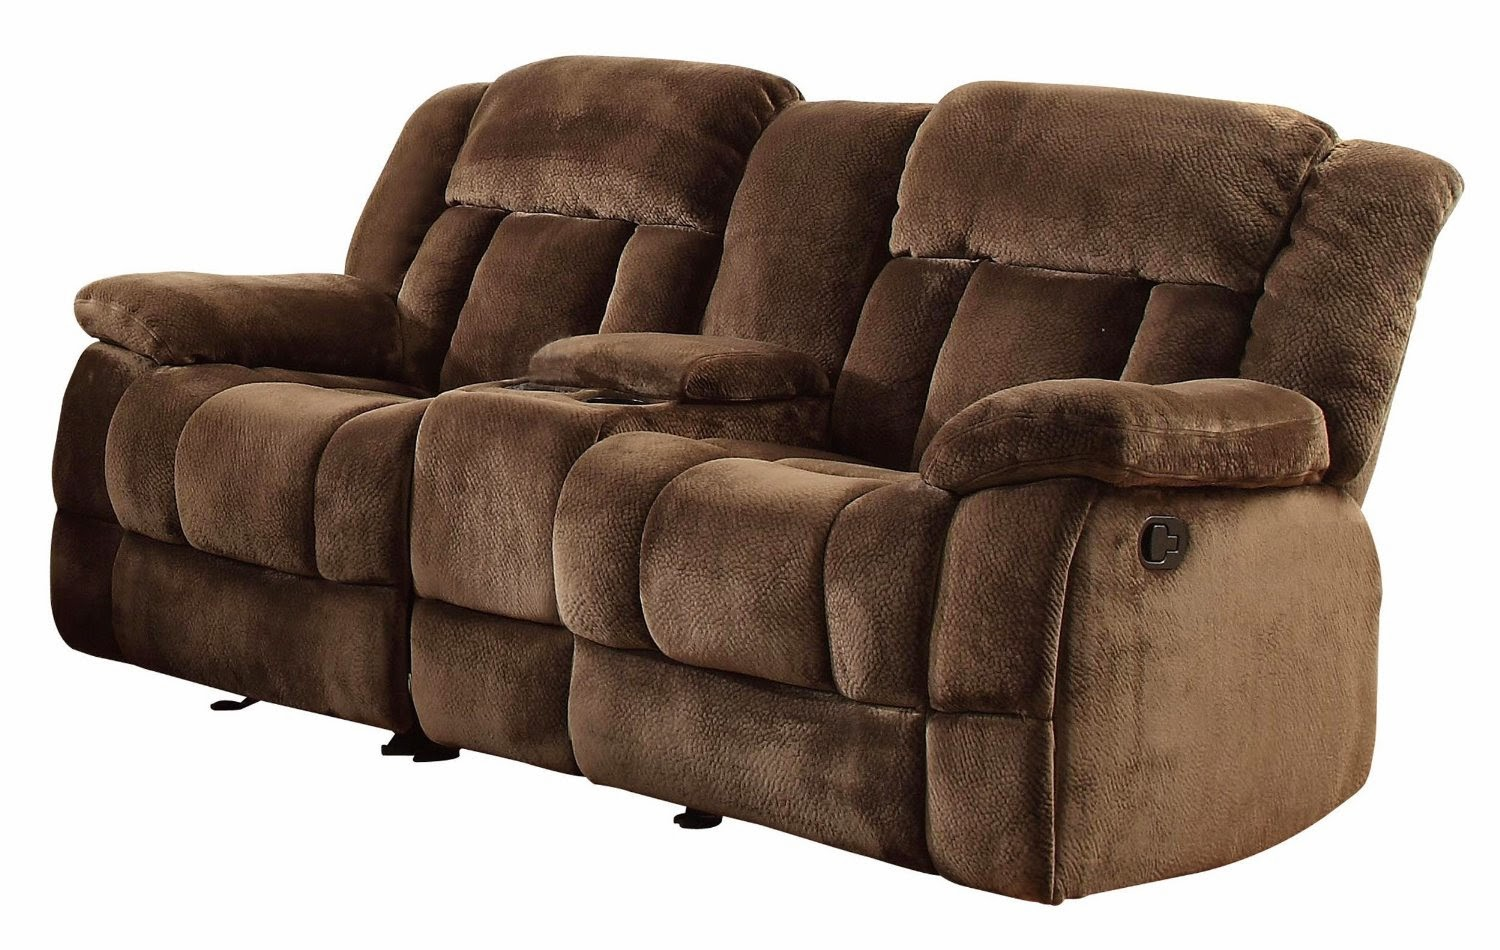 Attirant Homelegance Chocolate Brown Reclining Sofa With Center Console